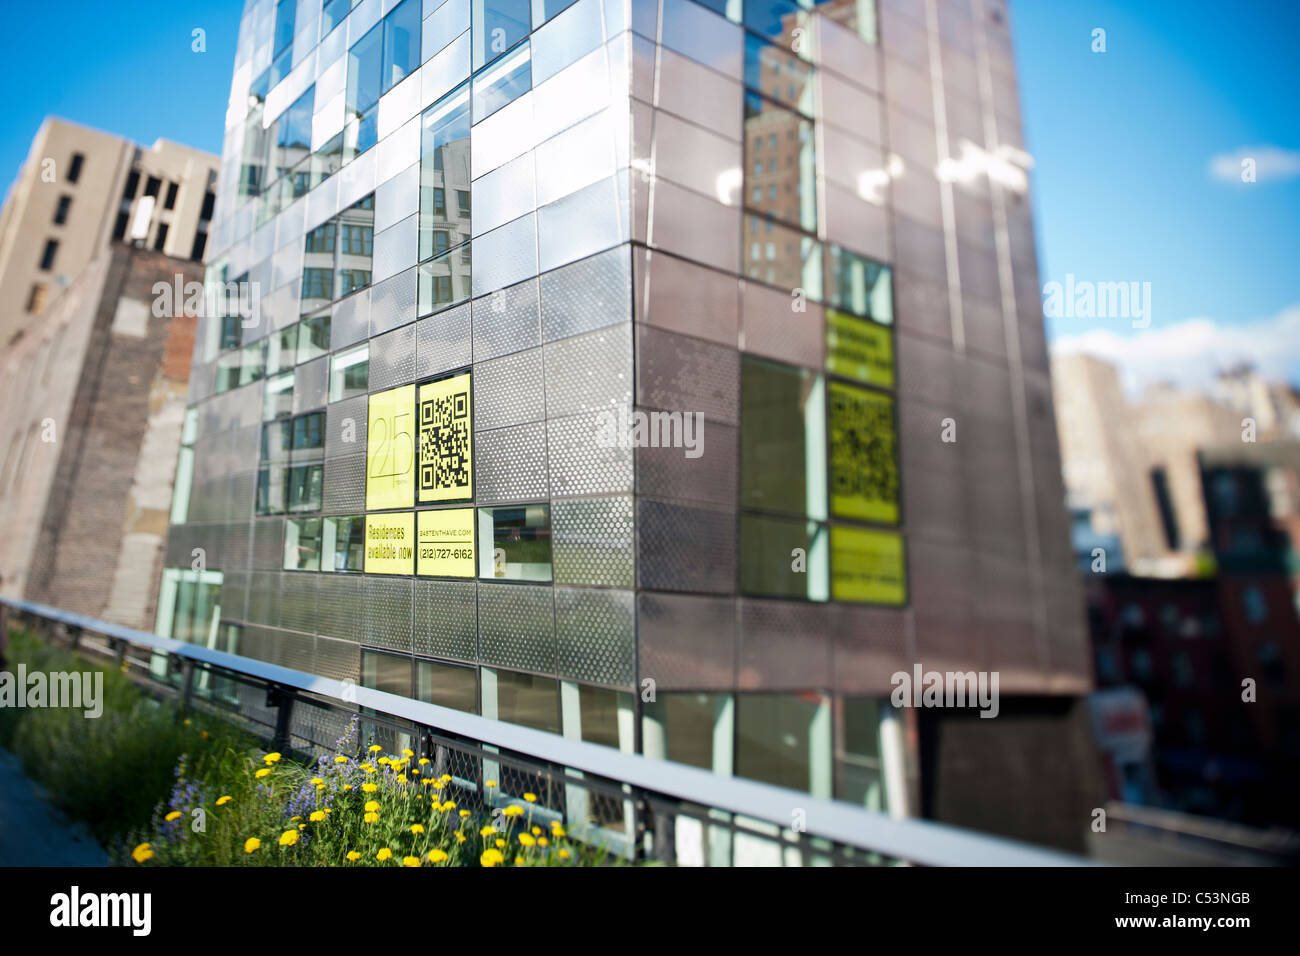 Real estate development featuring advertising using QR codes along the popular High Line Park in New York - Stock Image